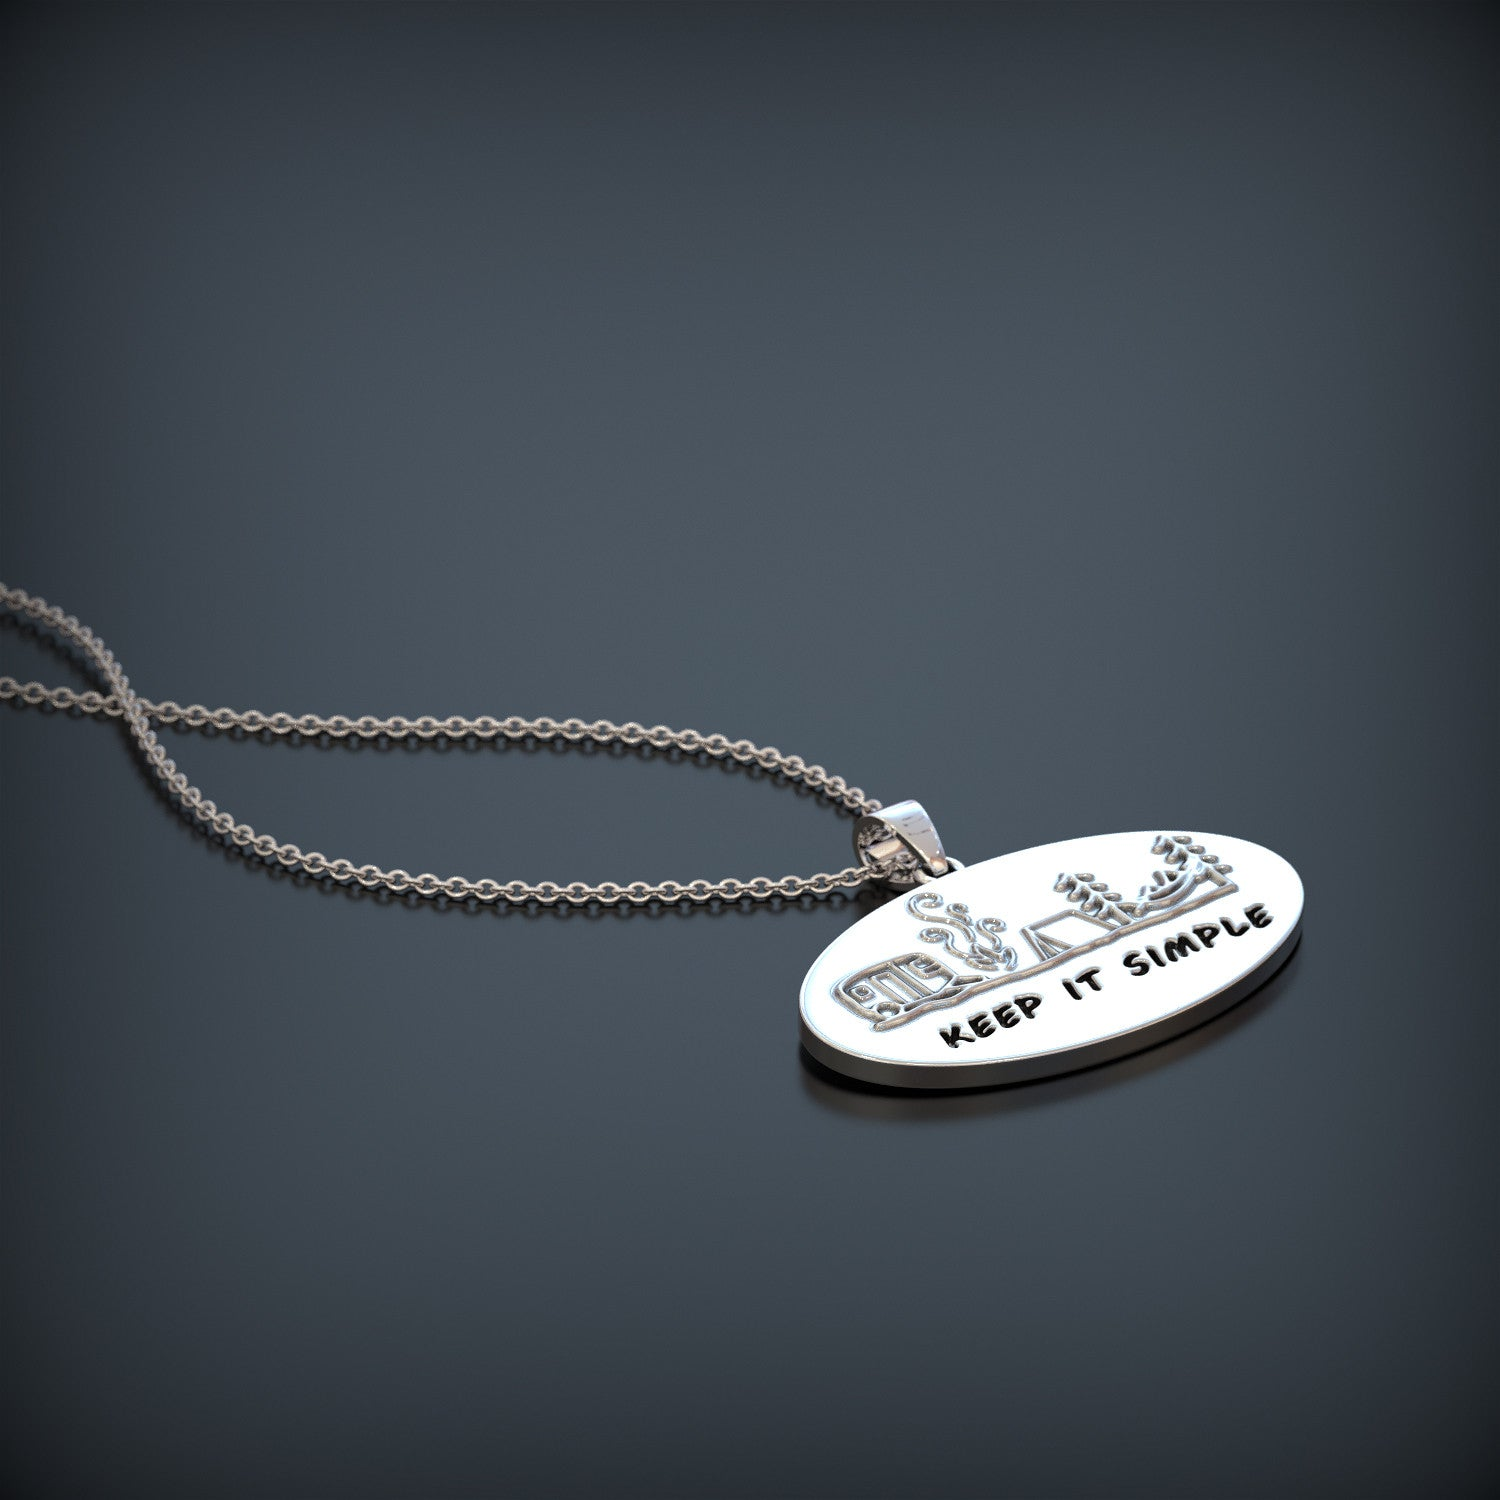 Camping - Keep It Simple Necklace